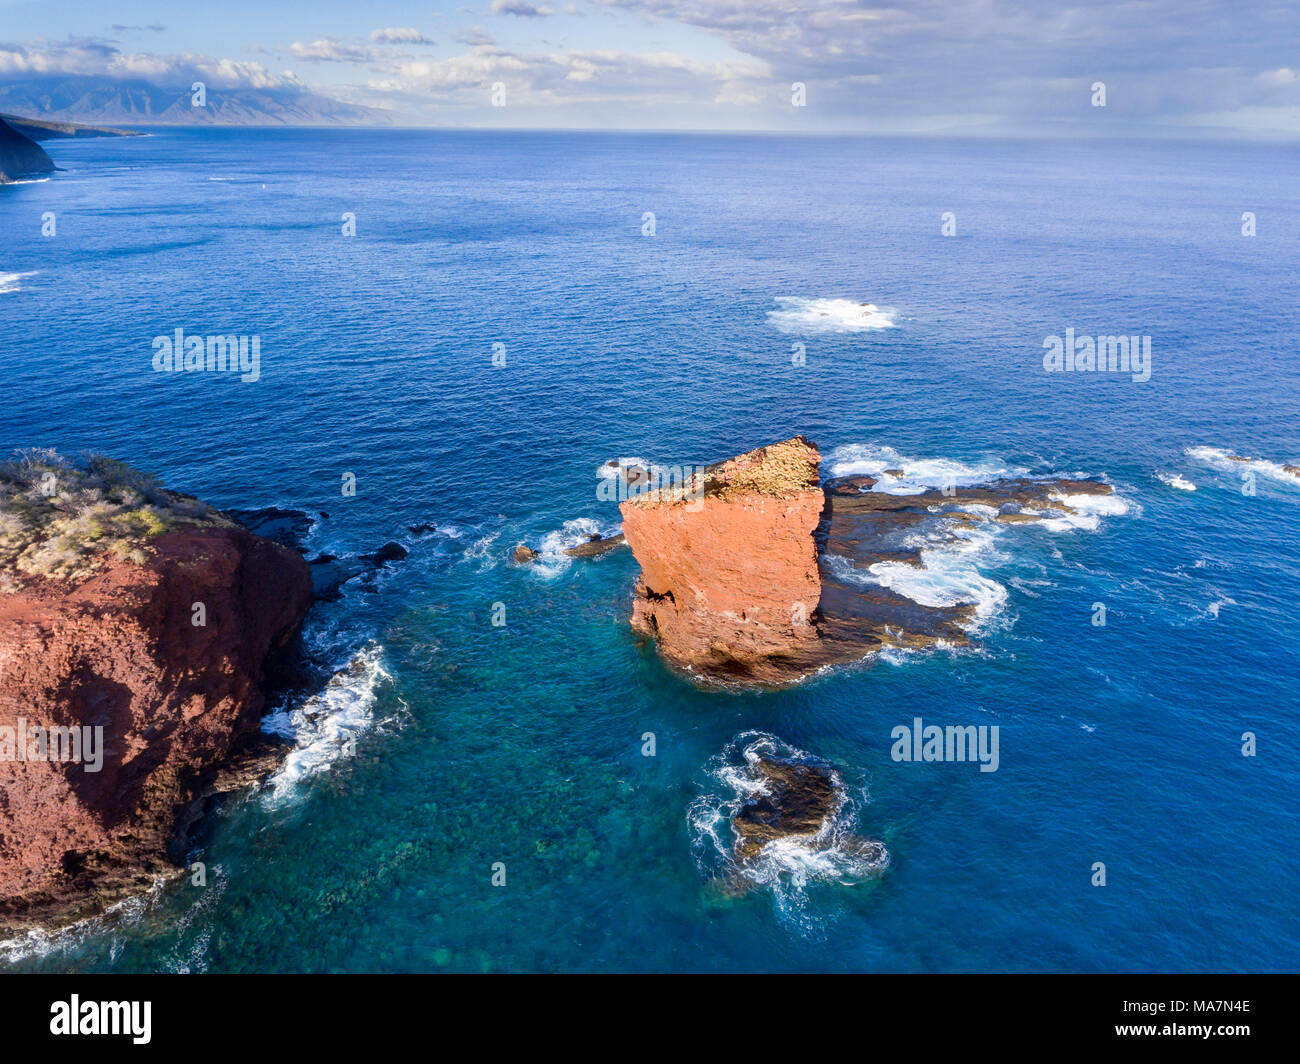 """Puu Pehe Rock, also known as """"Sweetheart Rock"""", is one of Lanai's most recognizable landmarks, Lanai Island, Hawaii, USA. Just above/past the rock is  - Stock Image"""